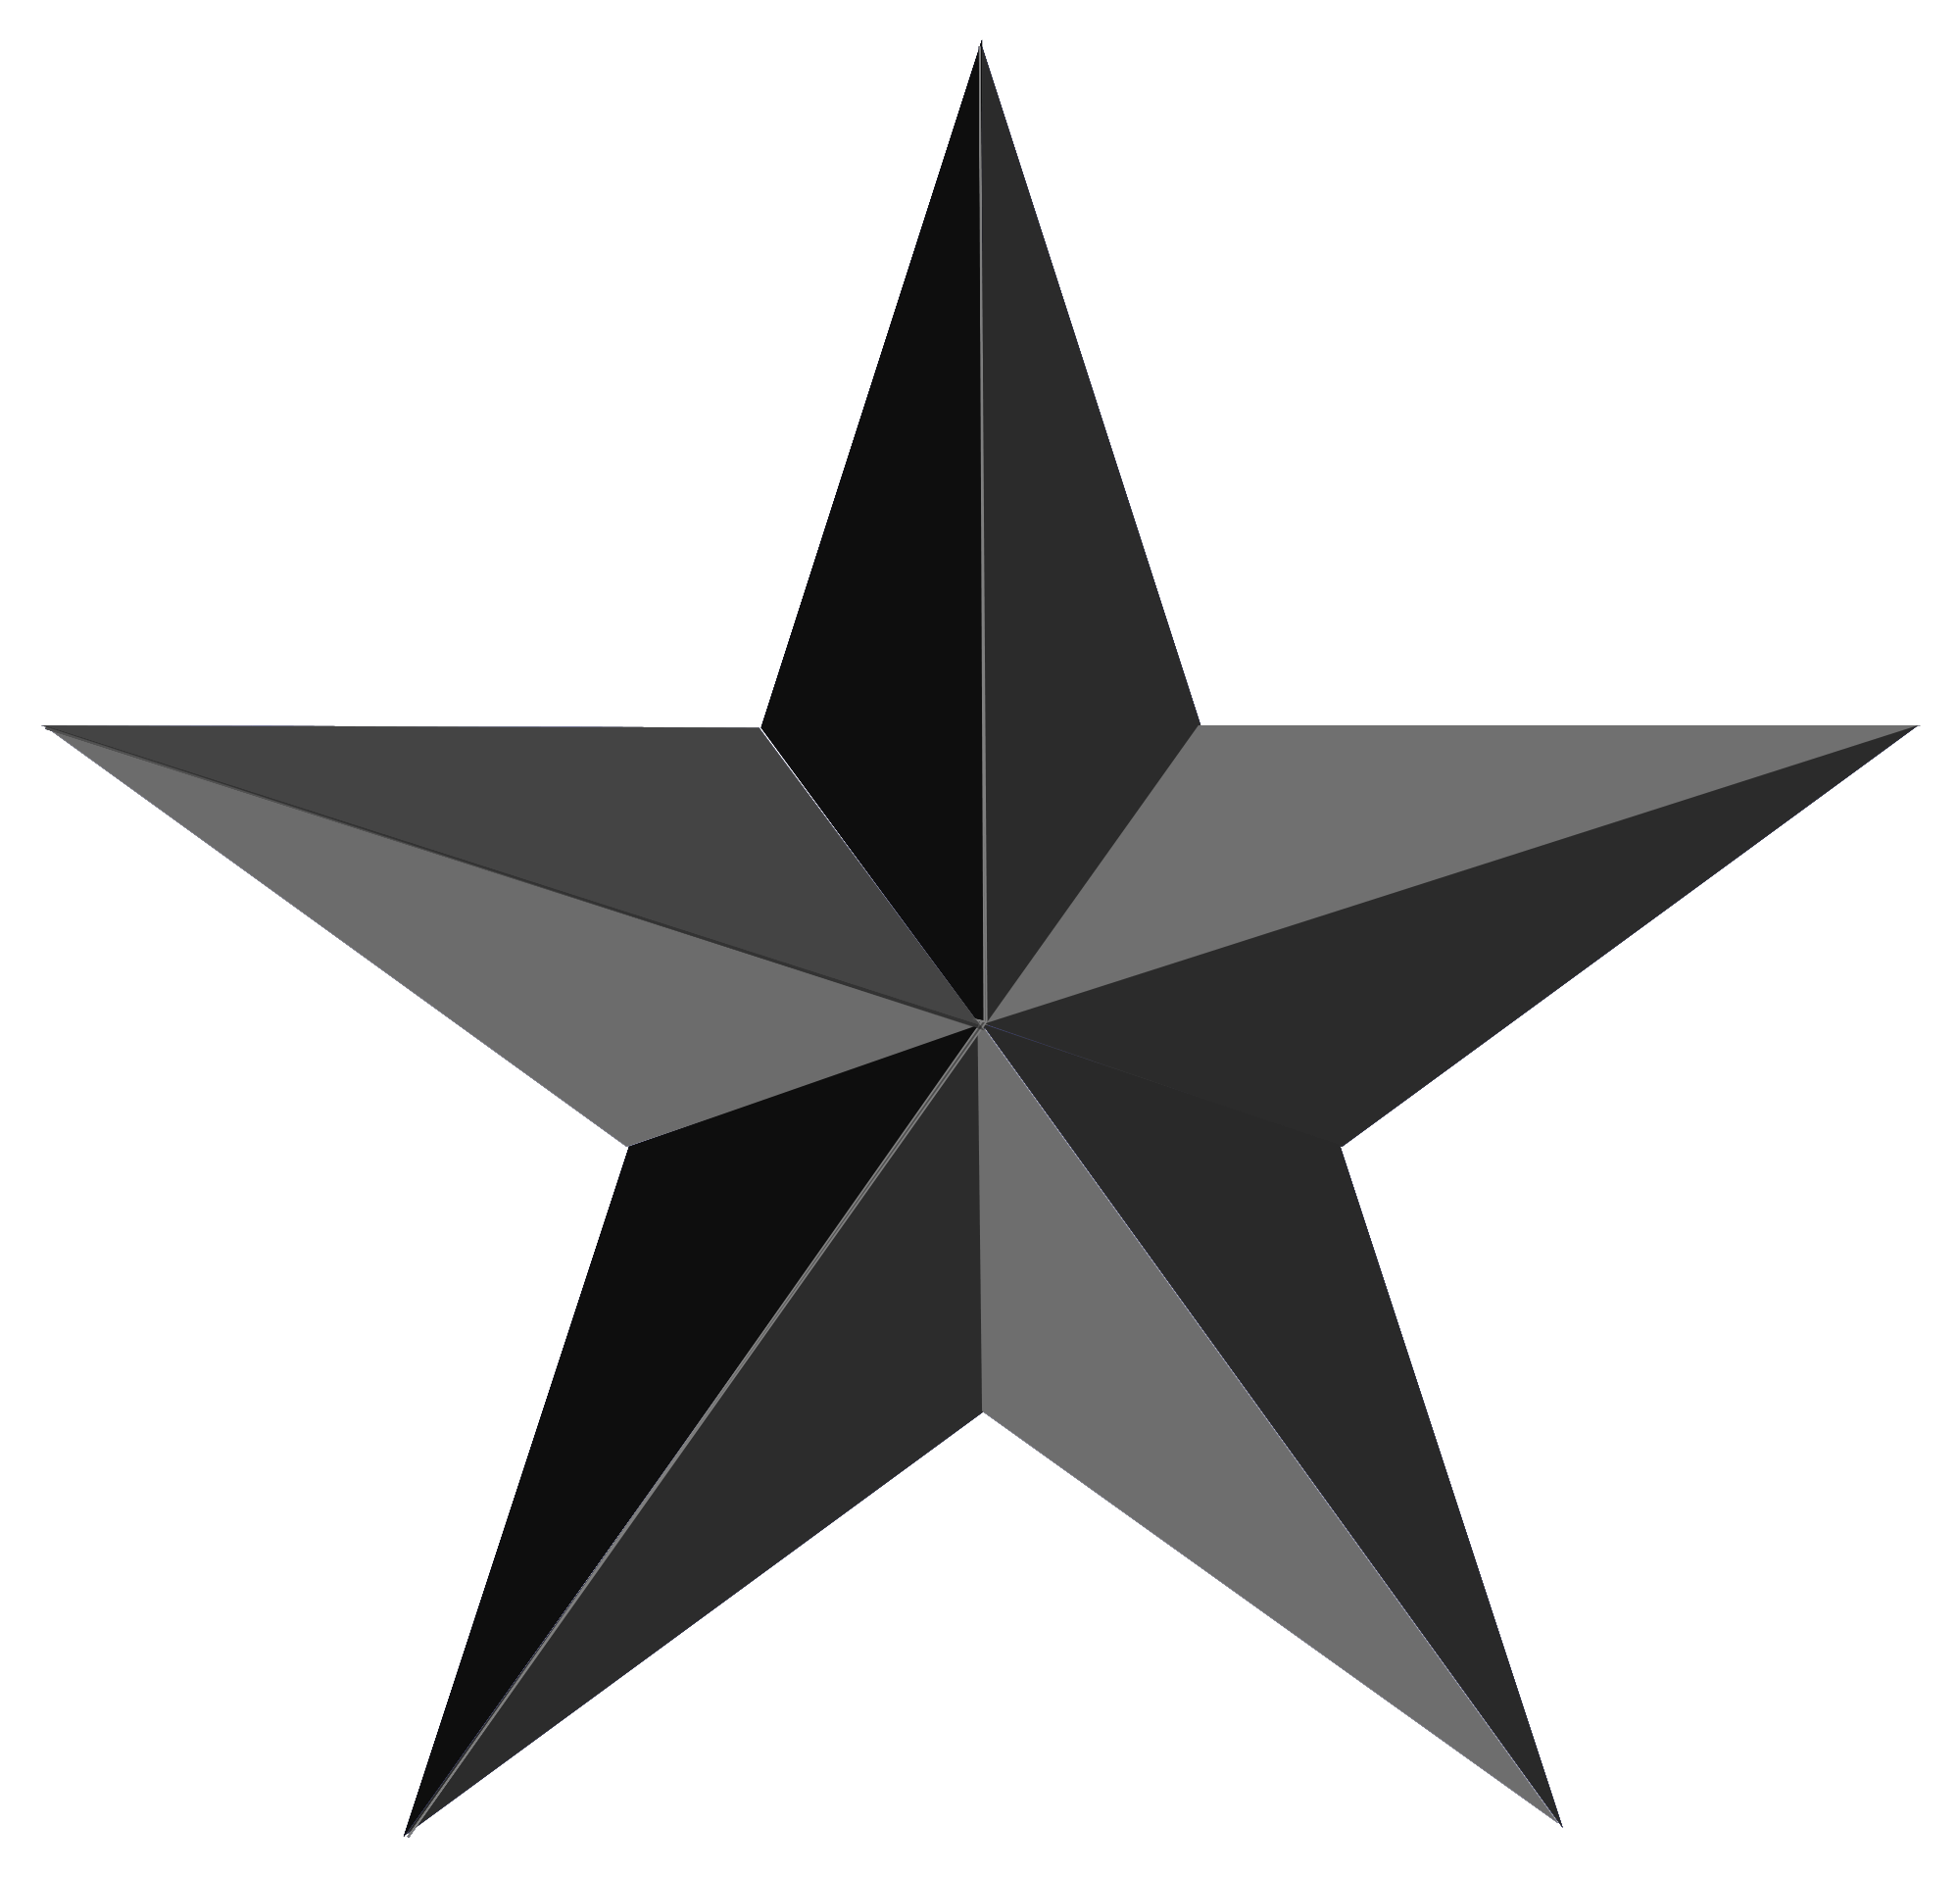 File:Black star.png - PNG Star Black And White